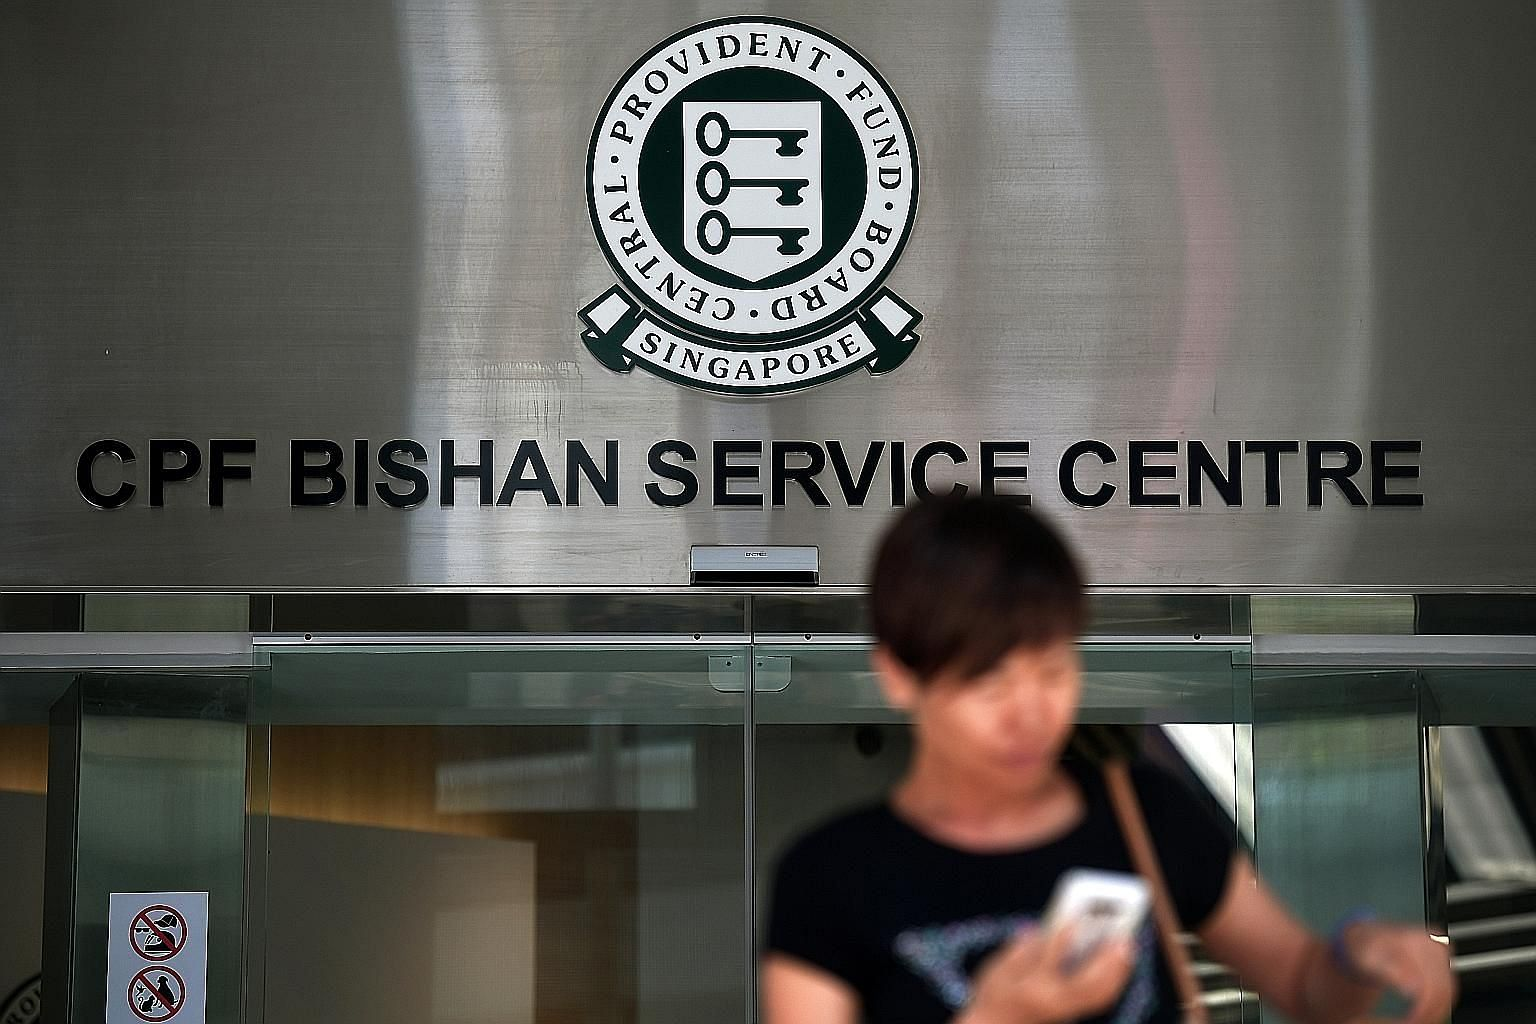 Of the 534,000 CPF members who used their funds to invest from October 2018 to September last year, 54 per cent actually did worse than those who did not invest the money they had in their CPF accounts.